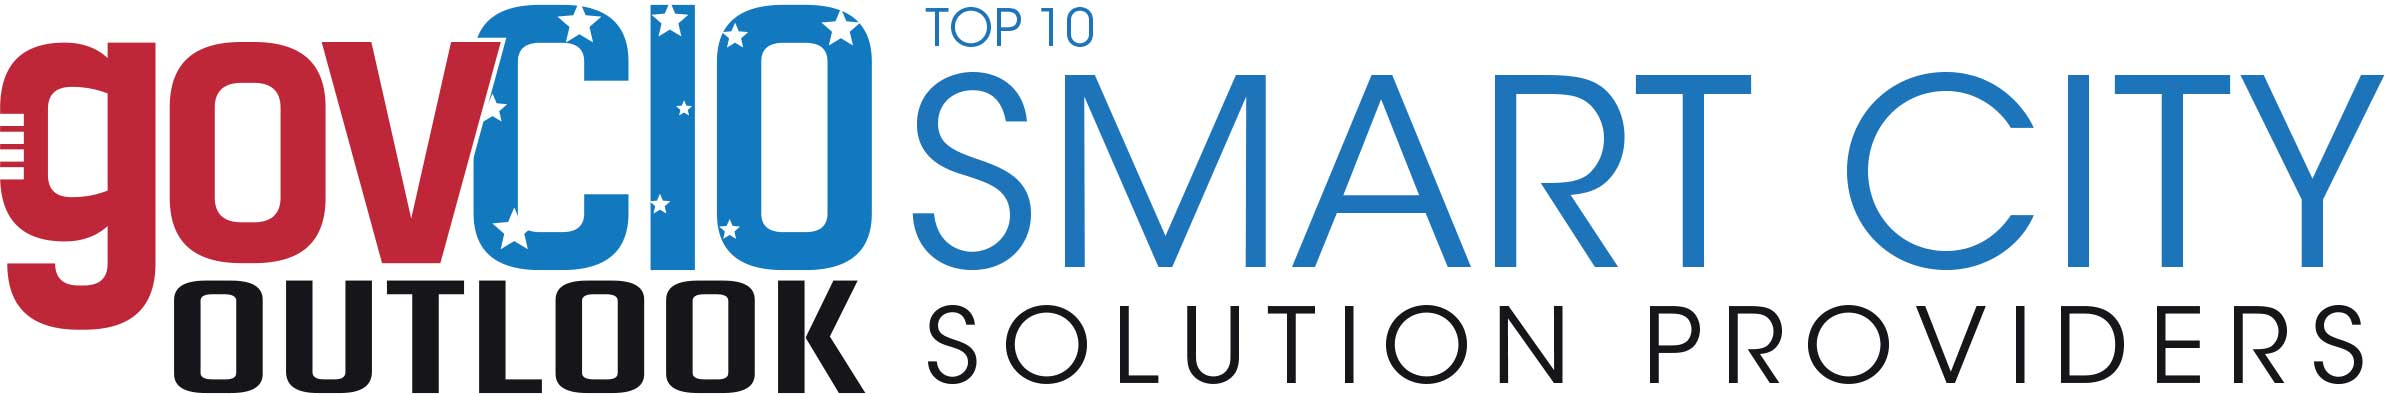 Top 10 Smart City Solution Companies - 2019